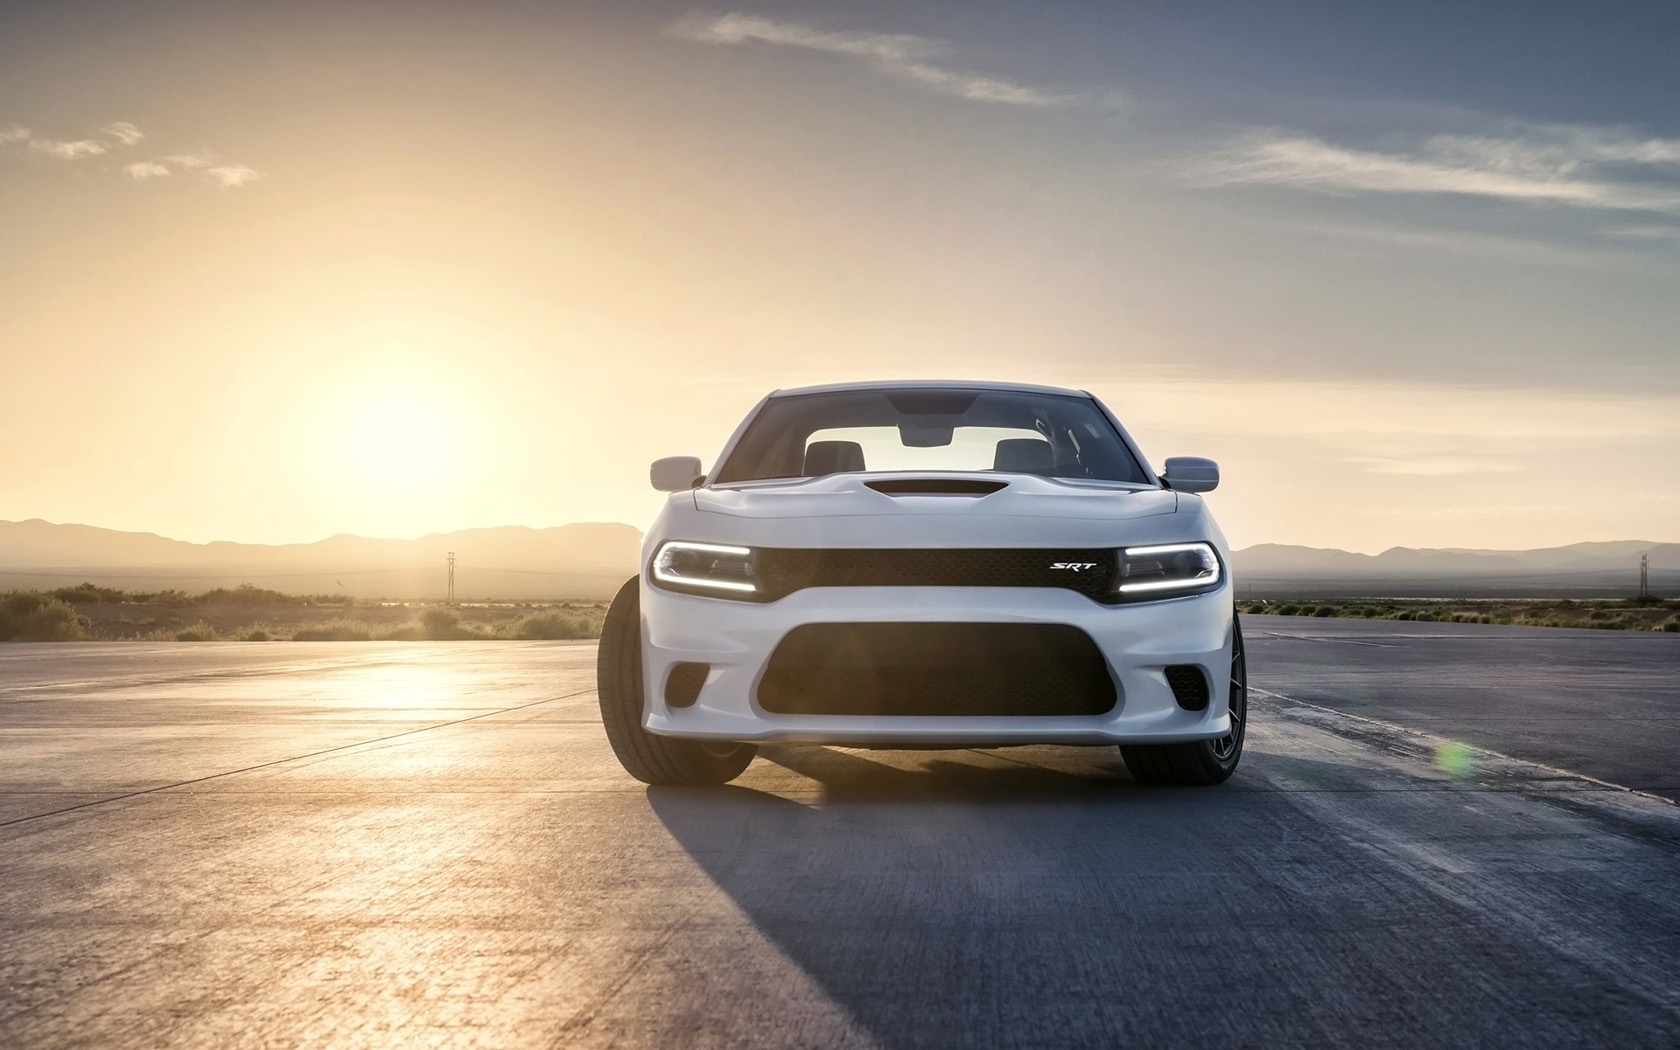 Dodge Charger Hellcat Wallpaper Albumccars Cars Images Collection